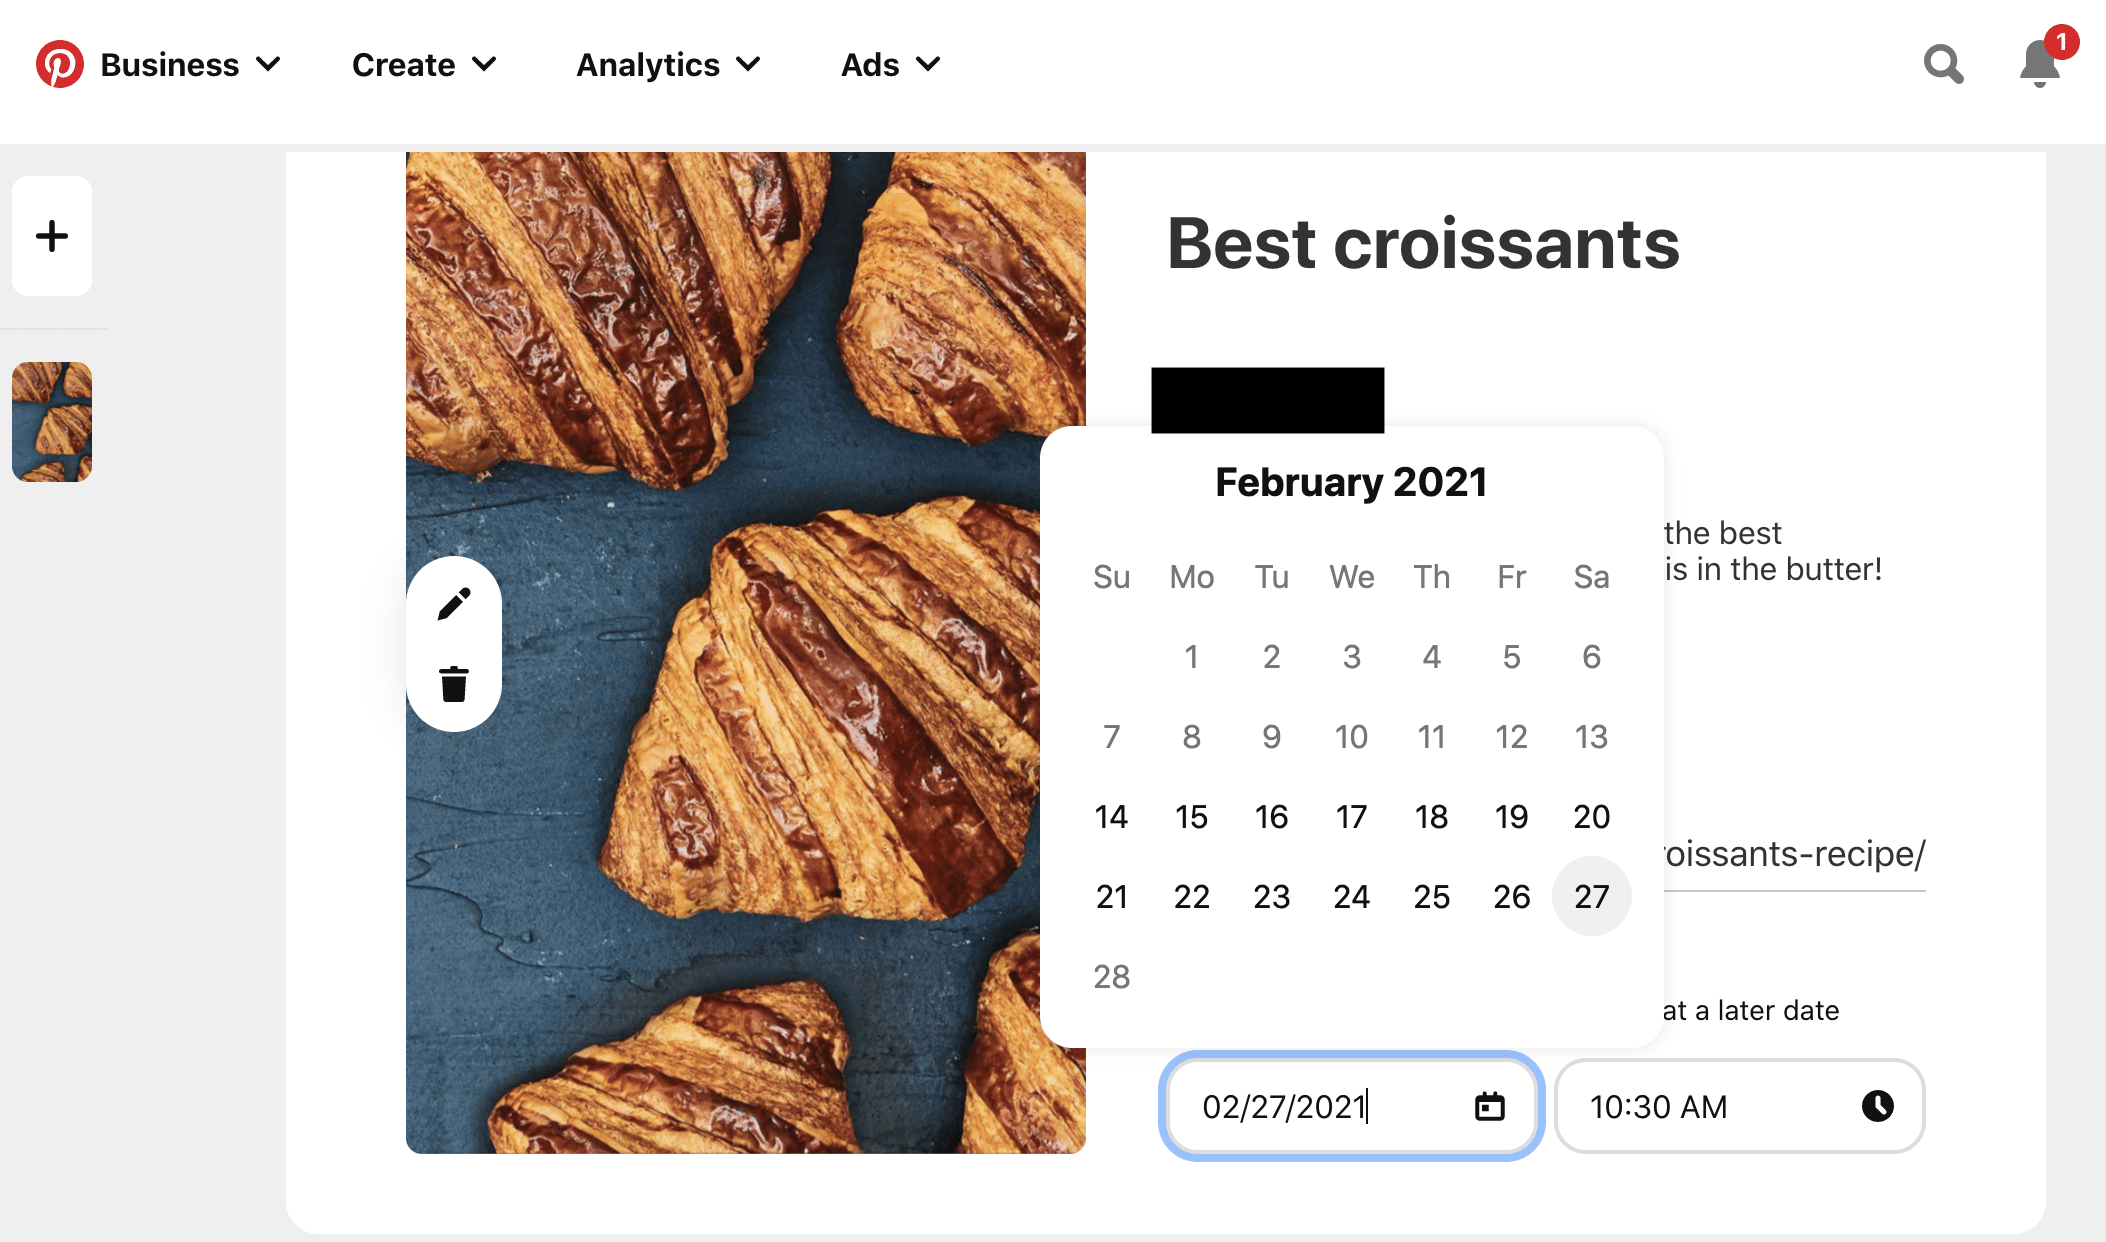 schedule best croissants board for February 2021